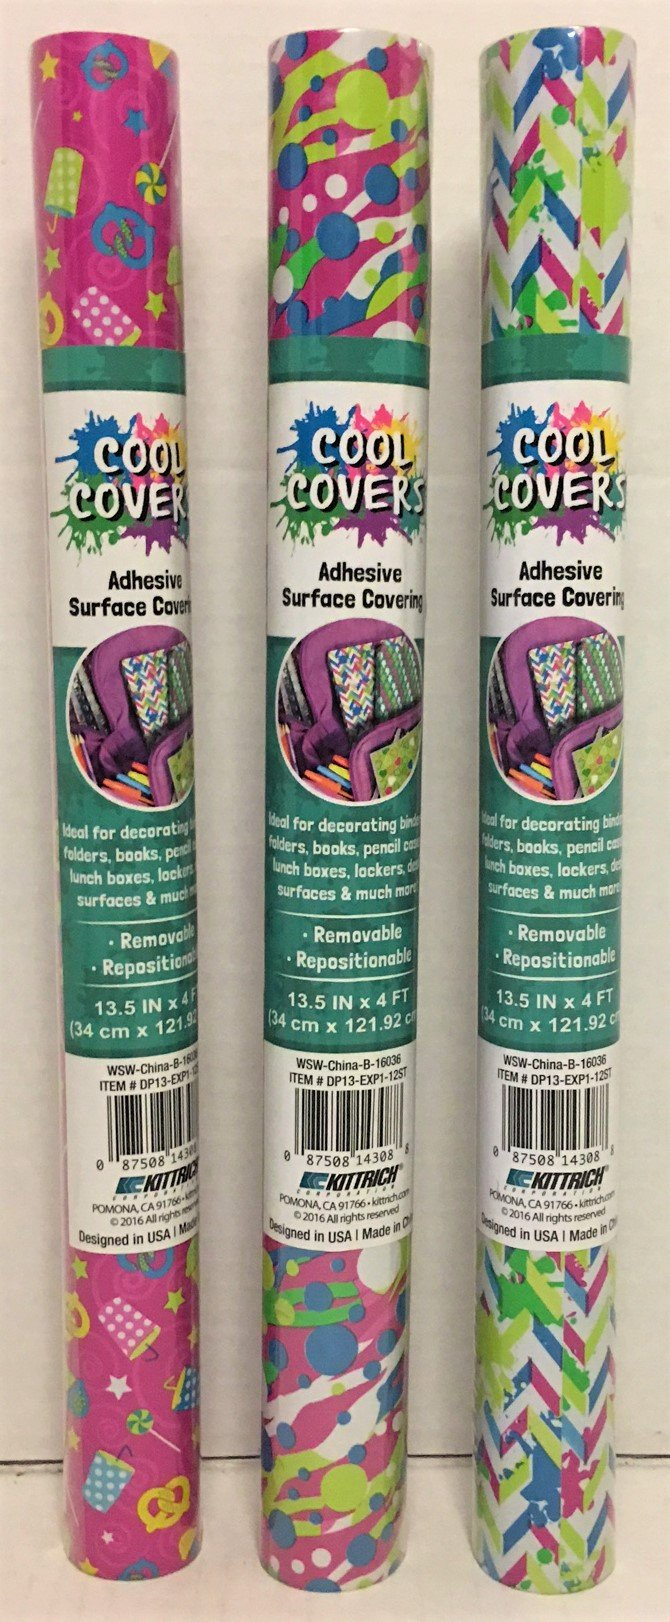 Kittrich Cool Covers Adhesive Surface Covering (Patterns Vary)